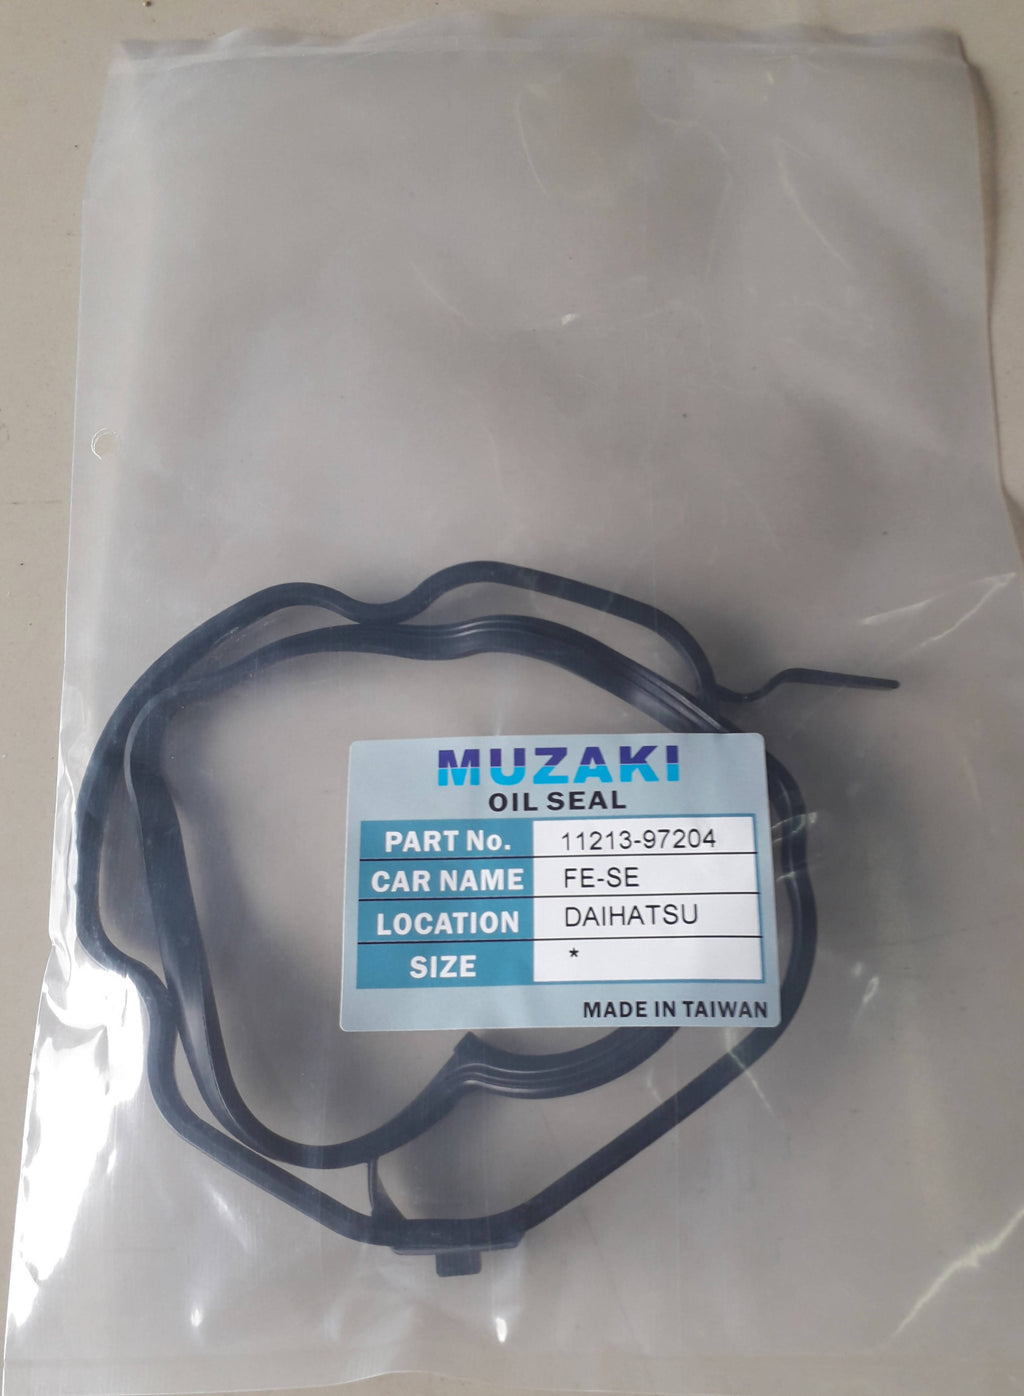 CYLINDER HEAD COVER, OIL SEAL,MUZAKI, 11213-97204, DAIHATSU, FE-SE,(035957)